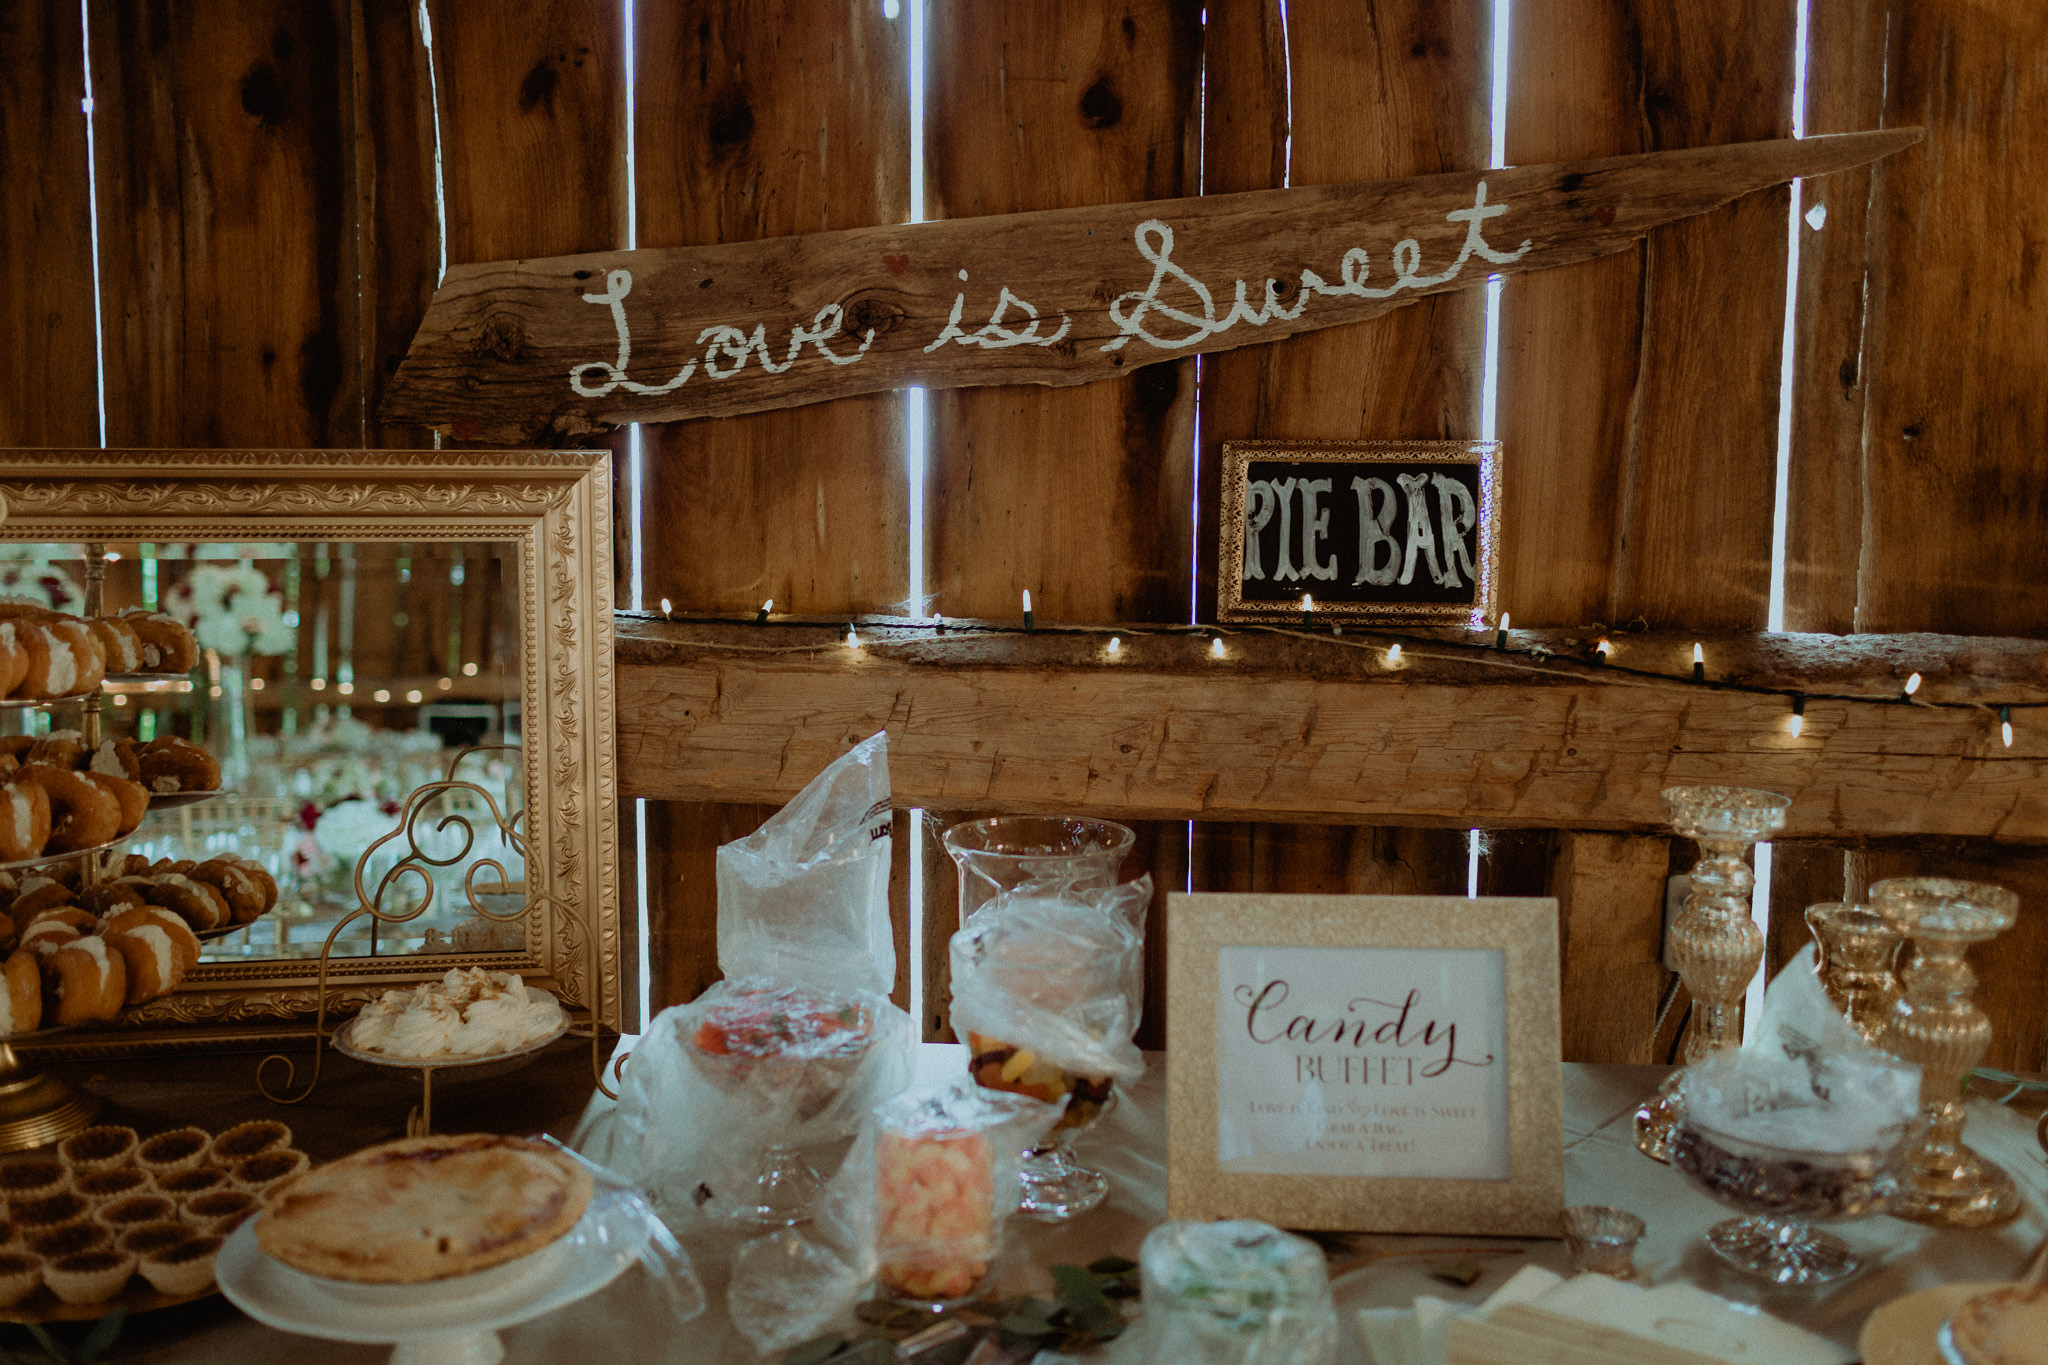 Love is sweet sign at candy bar in century barn wedding venue reception space